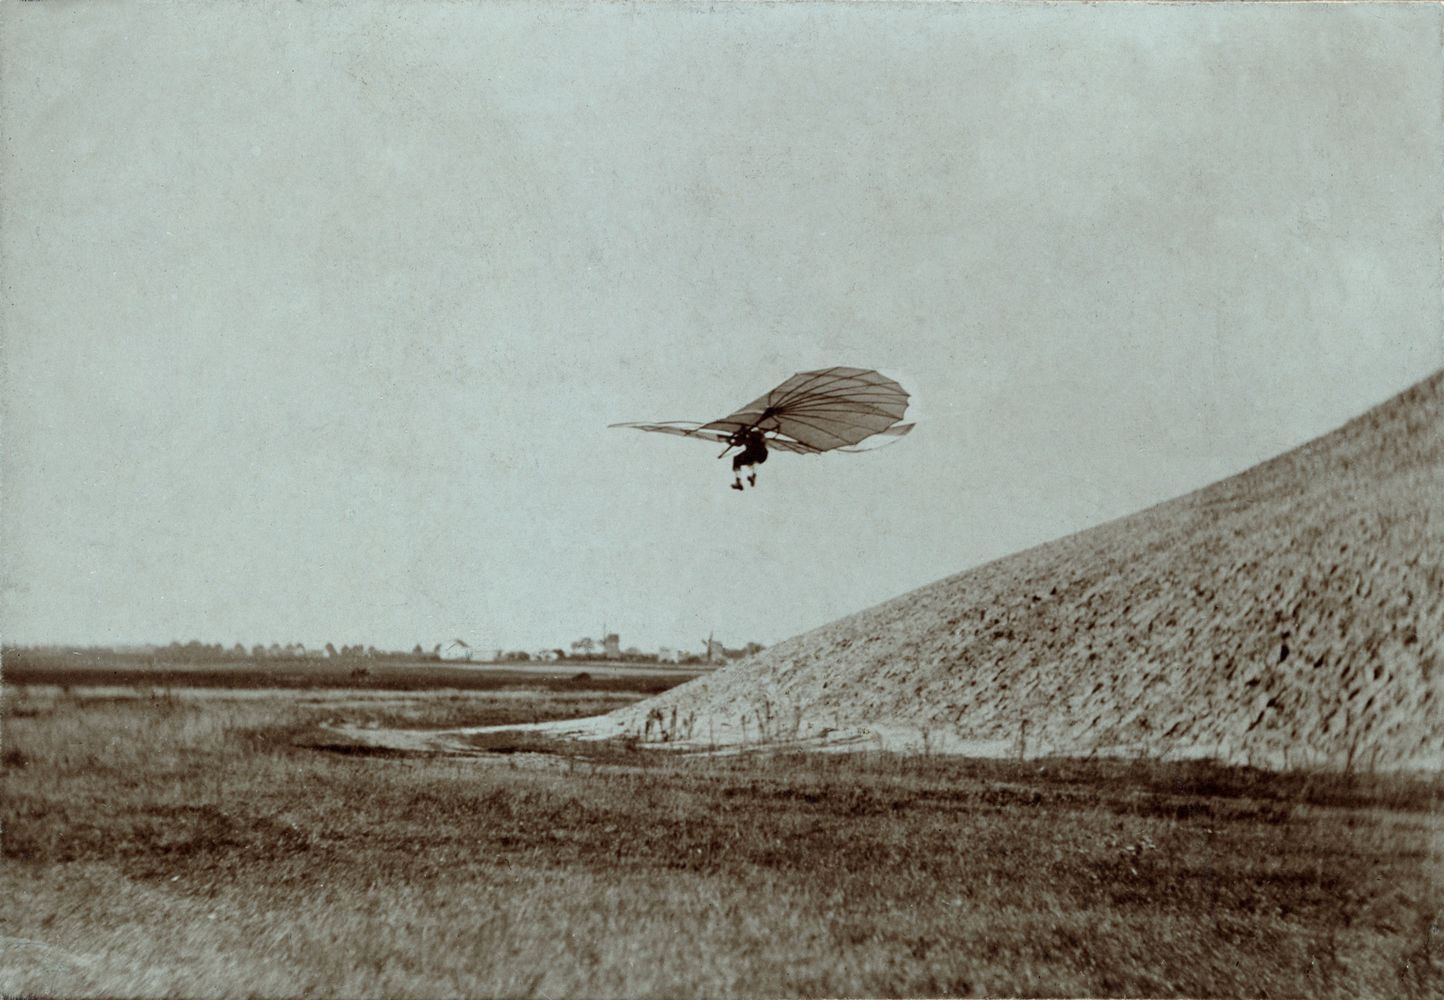 Otto Lilienthal gliding experiment ppmsca.02546